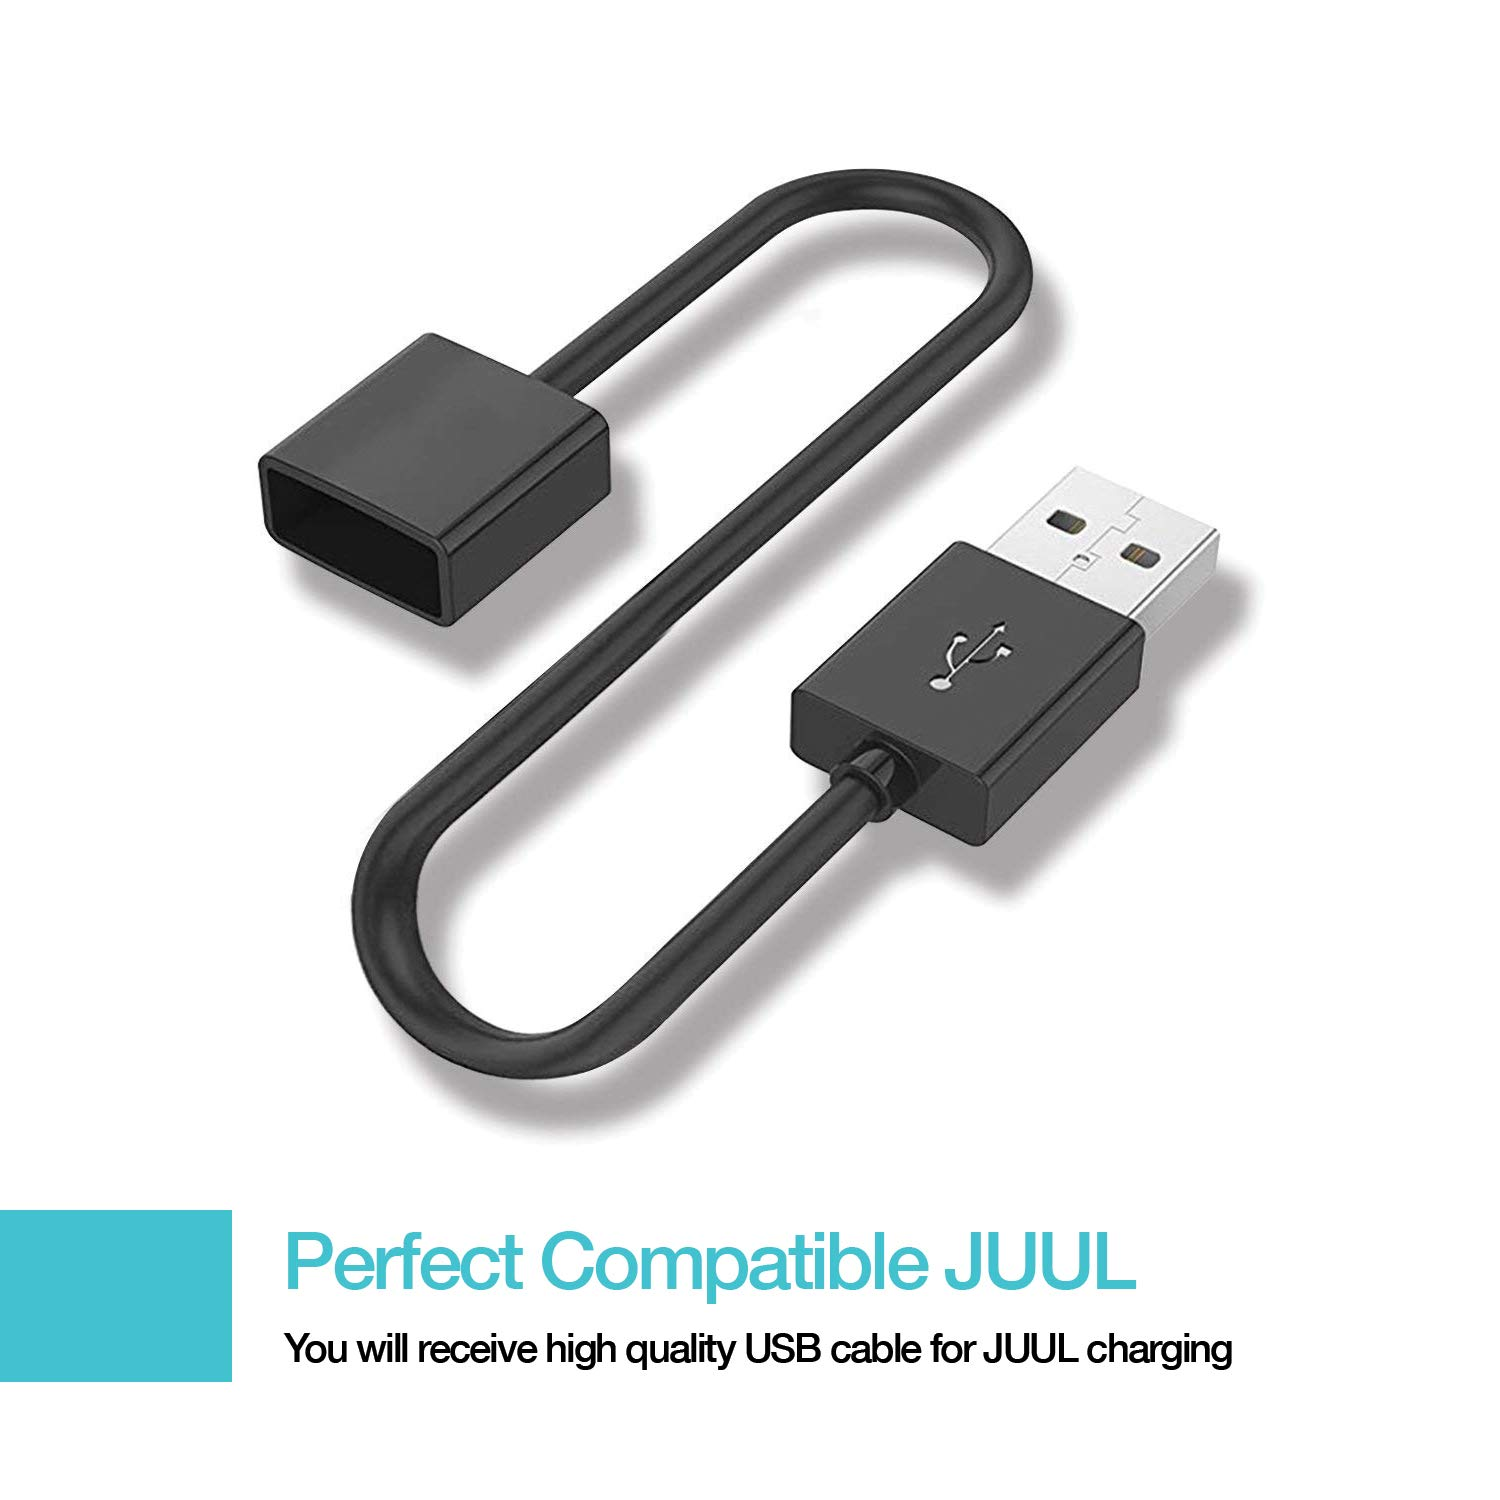 2.6 Ft Cord Magnetic Charger USB Cable 2 Pack